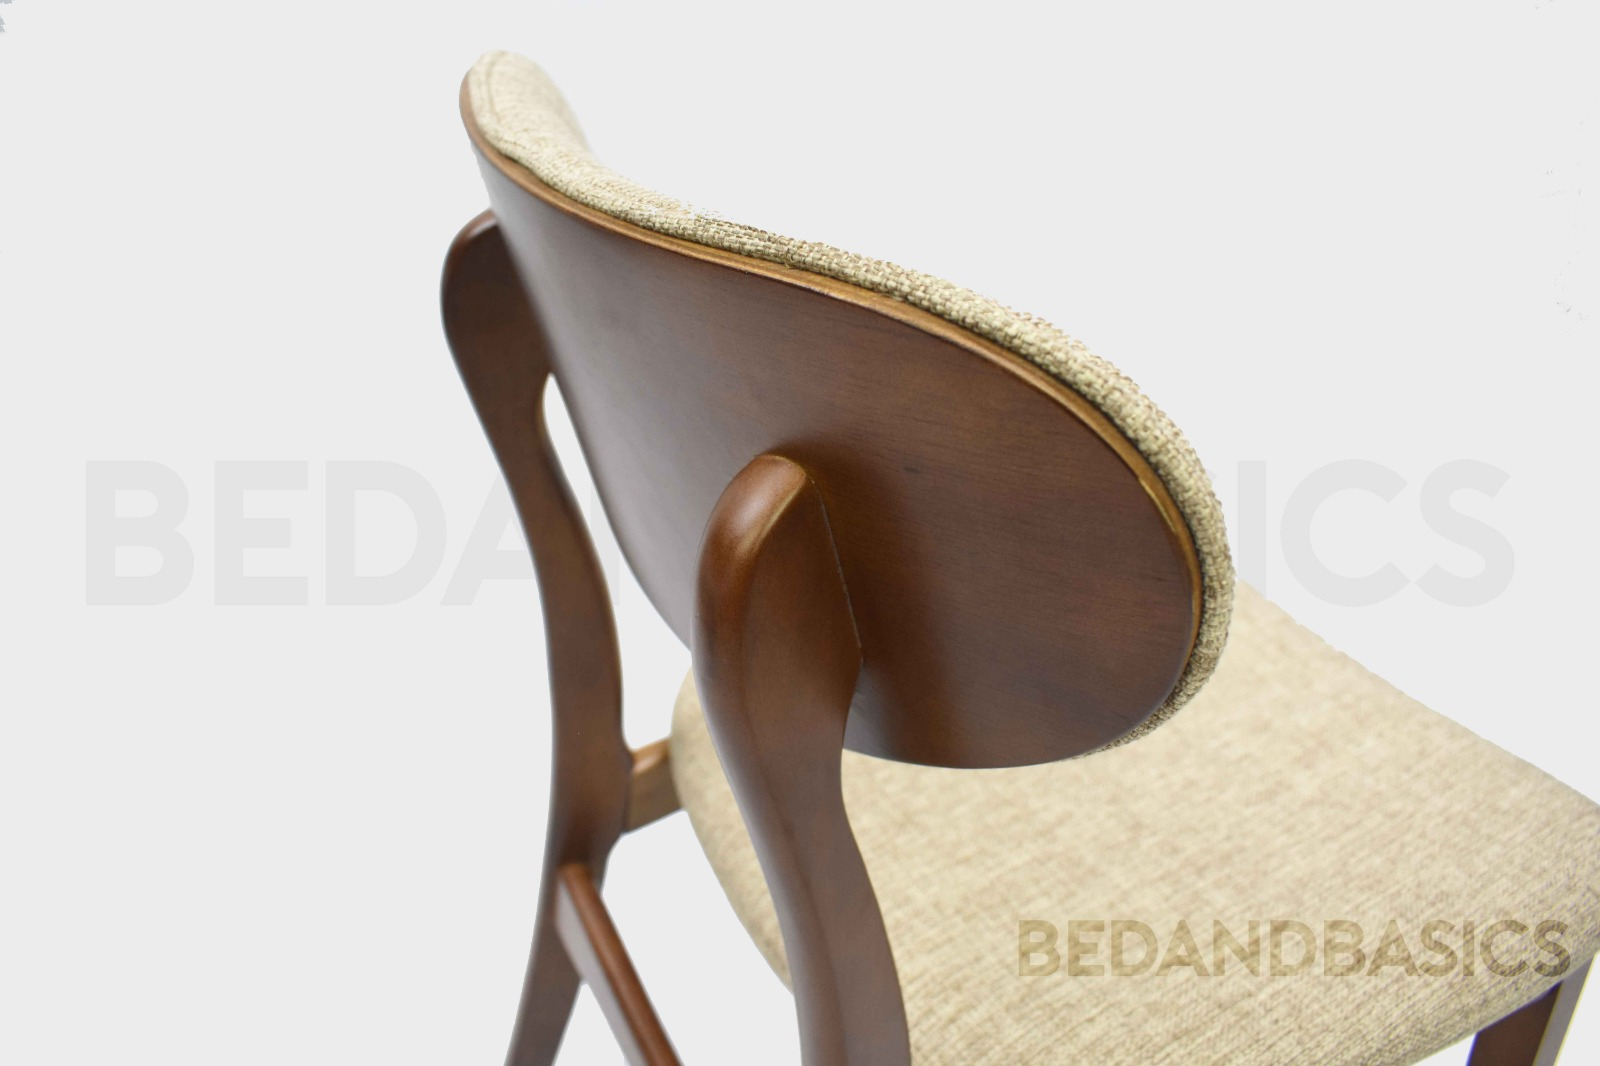 The seat and backrest are both slightly curved for maximum comfort. The curved wooden backrest is visually striking.